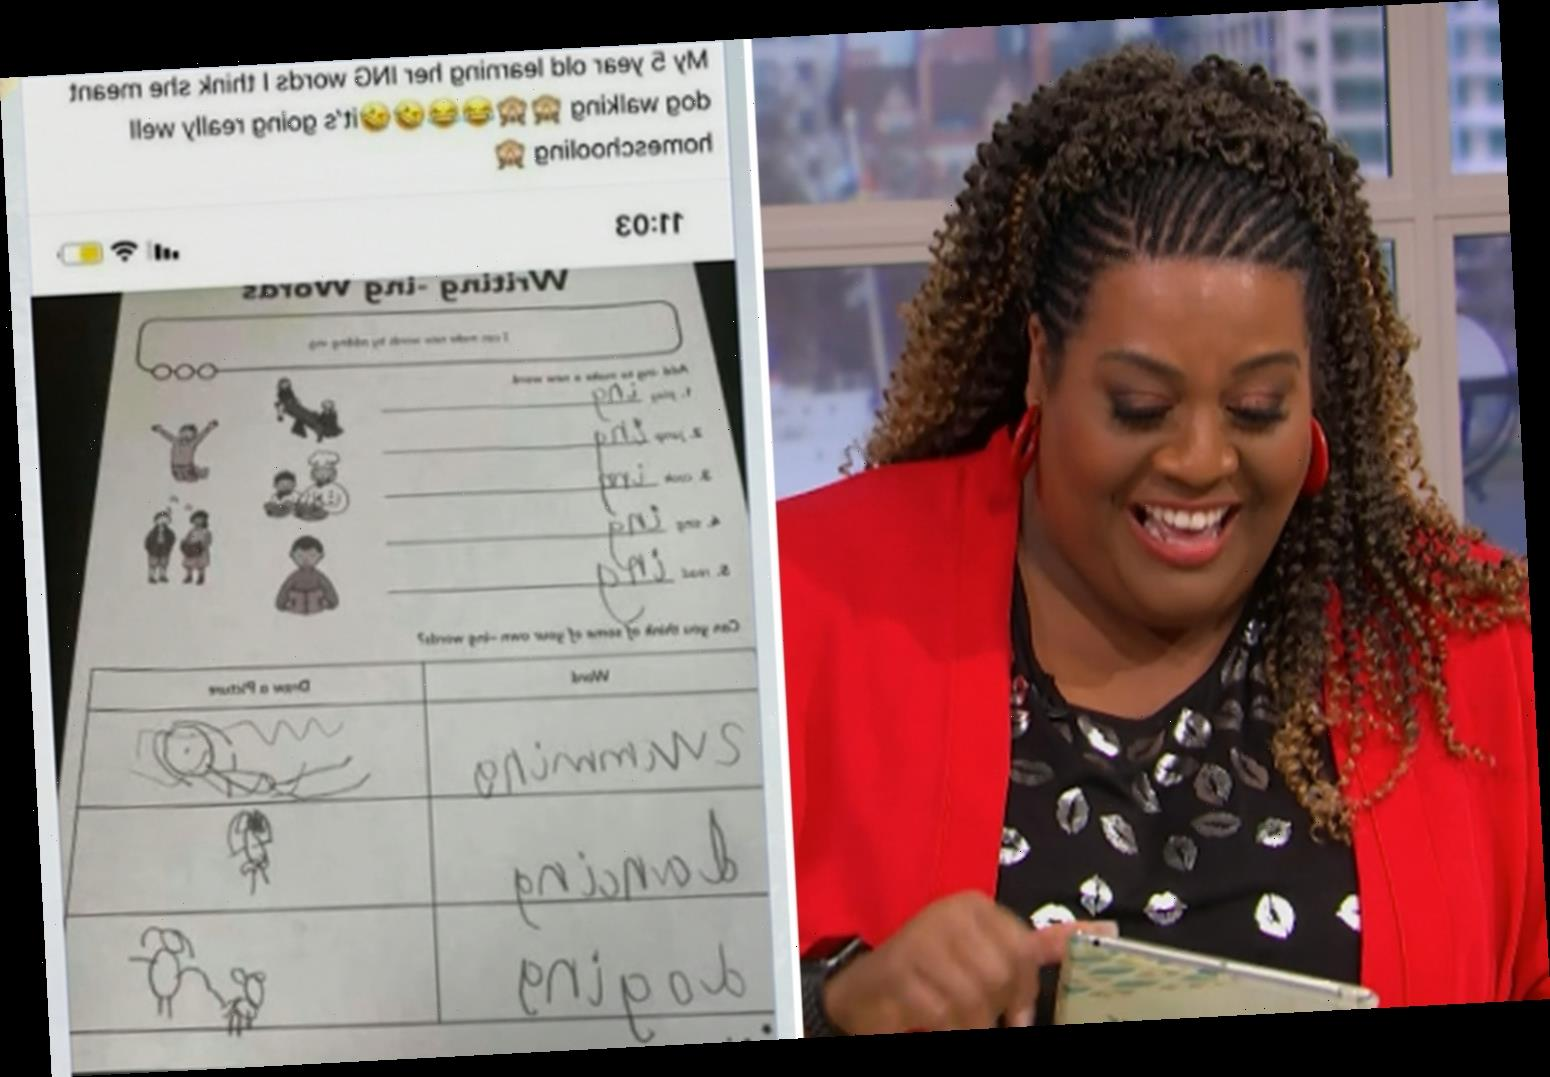 This Morning's Alison Hammond and Dermot O'Leary in hysterics over rude homeschool drawings